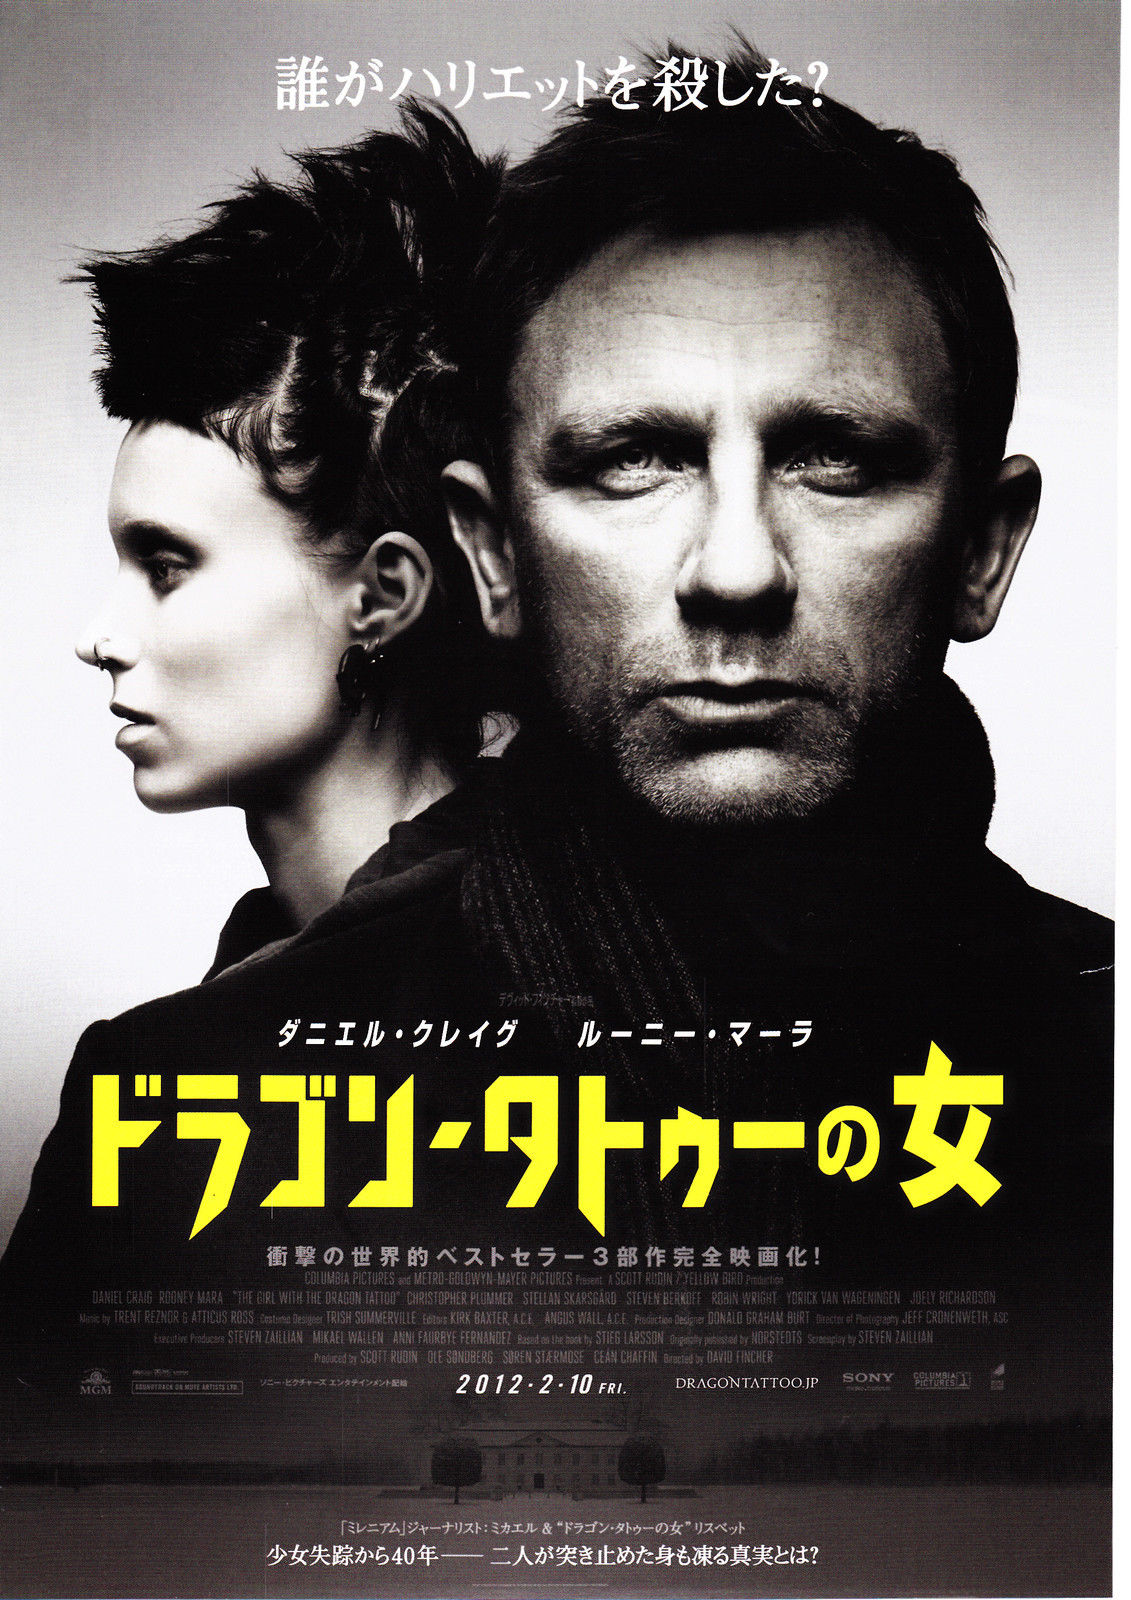 The-Girl-With-the-Dragon-Tattoo-Daniel-Craig-Rooney-Japan-Poster ... The Girl With The Dragon Tattoo Poster